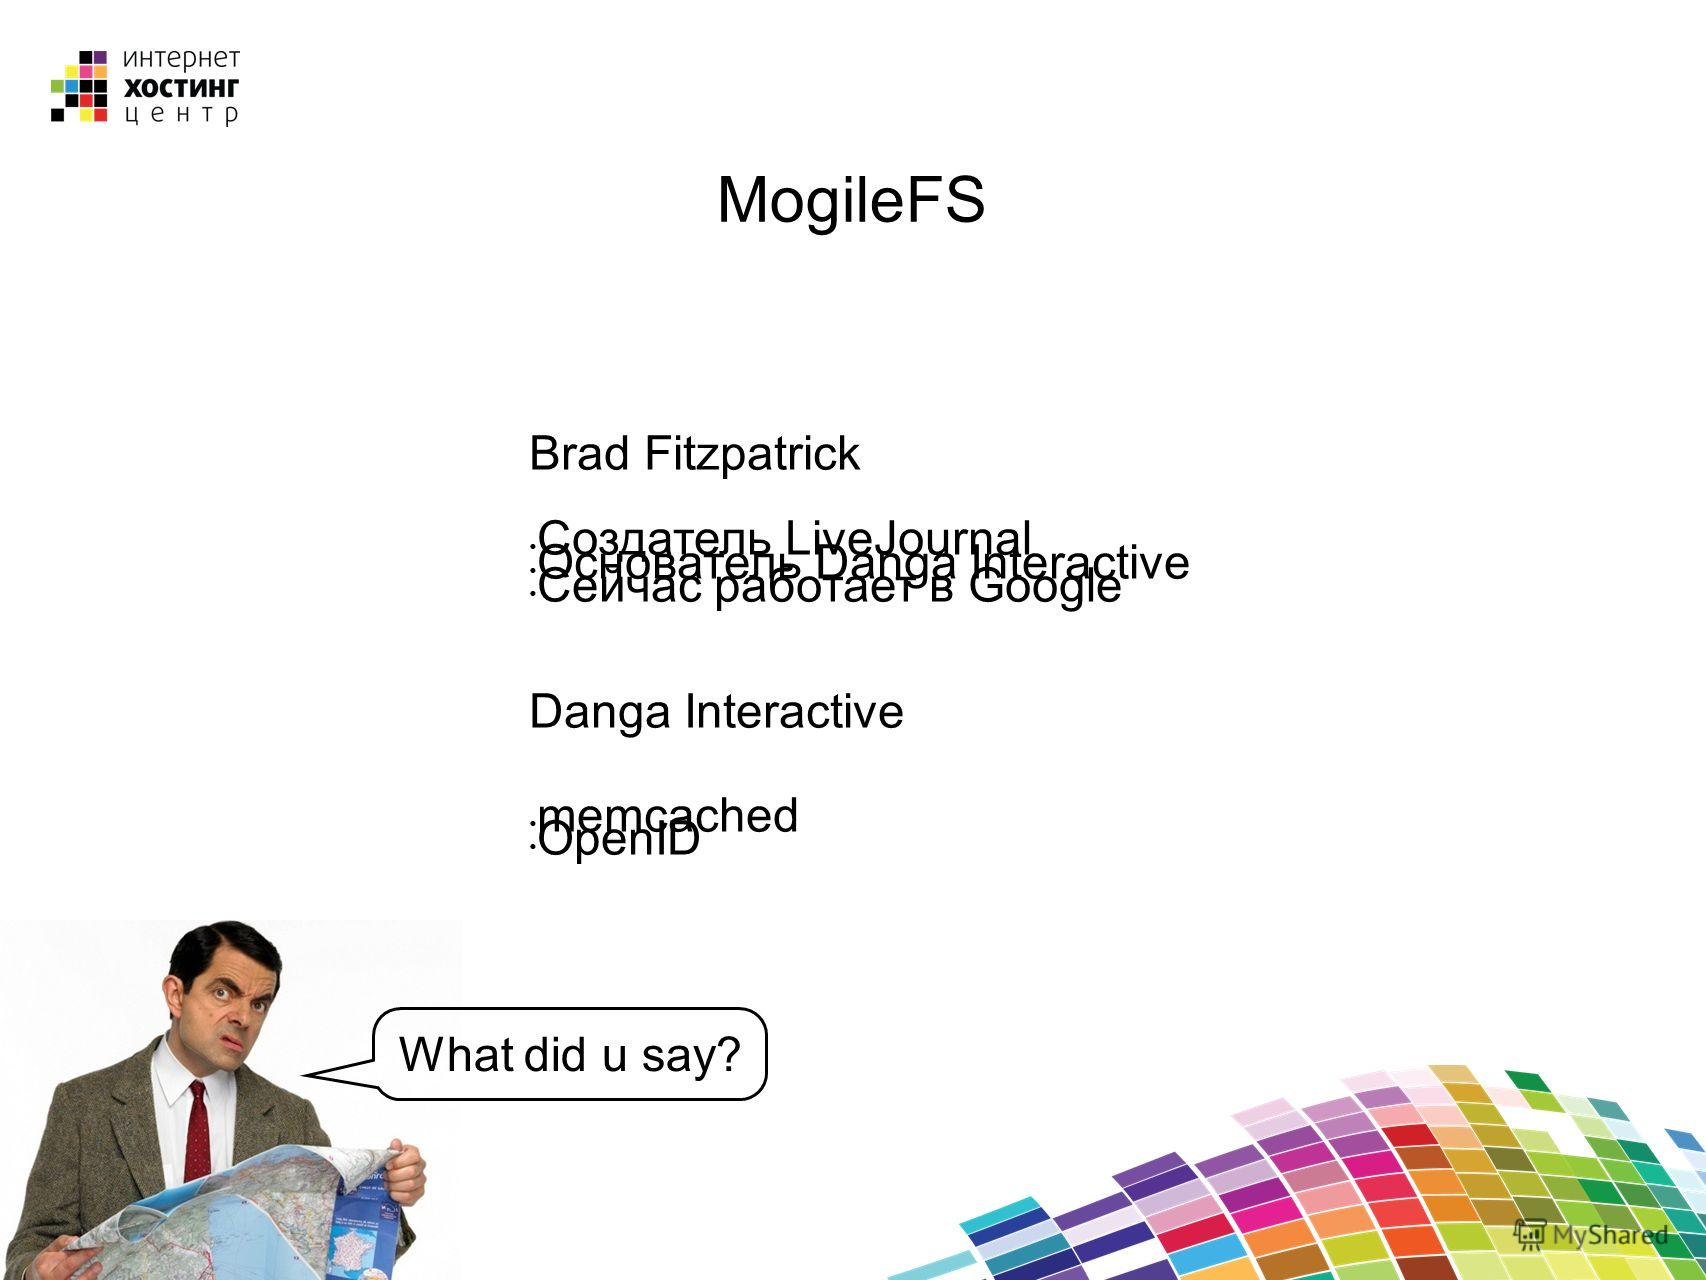 MogileFS Brad Fitzpatrick Создатель LiveJournal Основатель Danga Interactive Сейчас работает в Google Danga Interactive memcached OpenID What did u say?